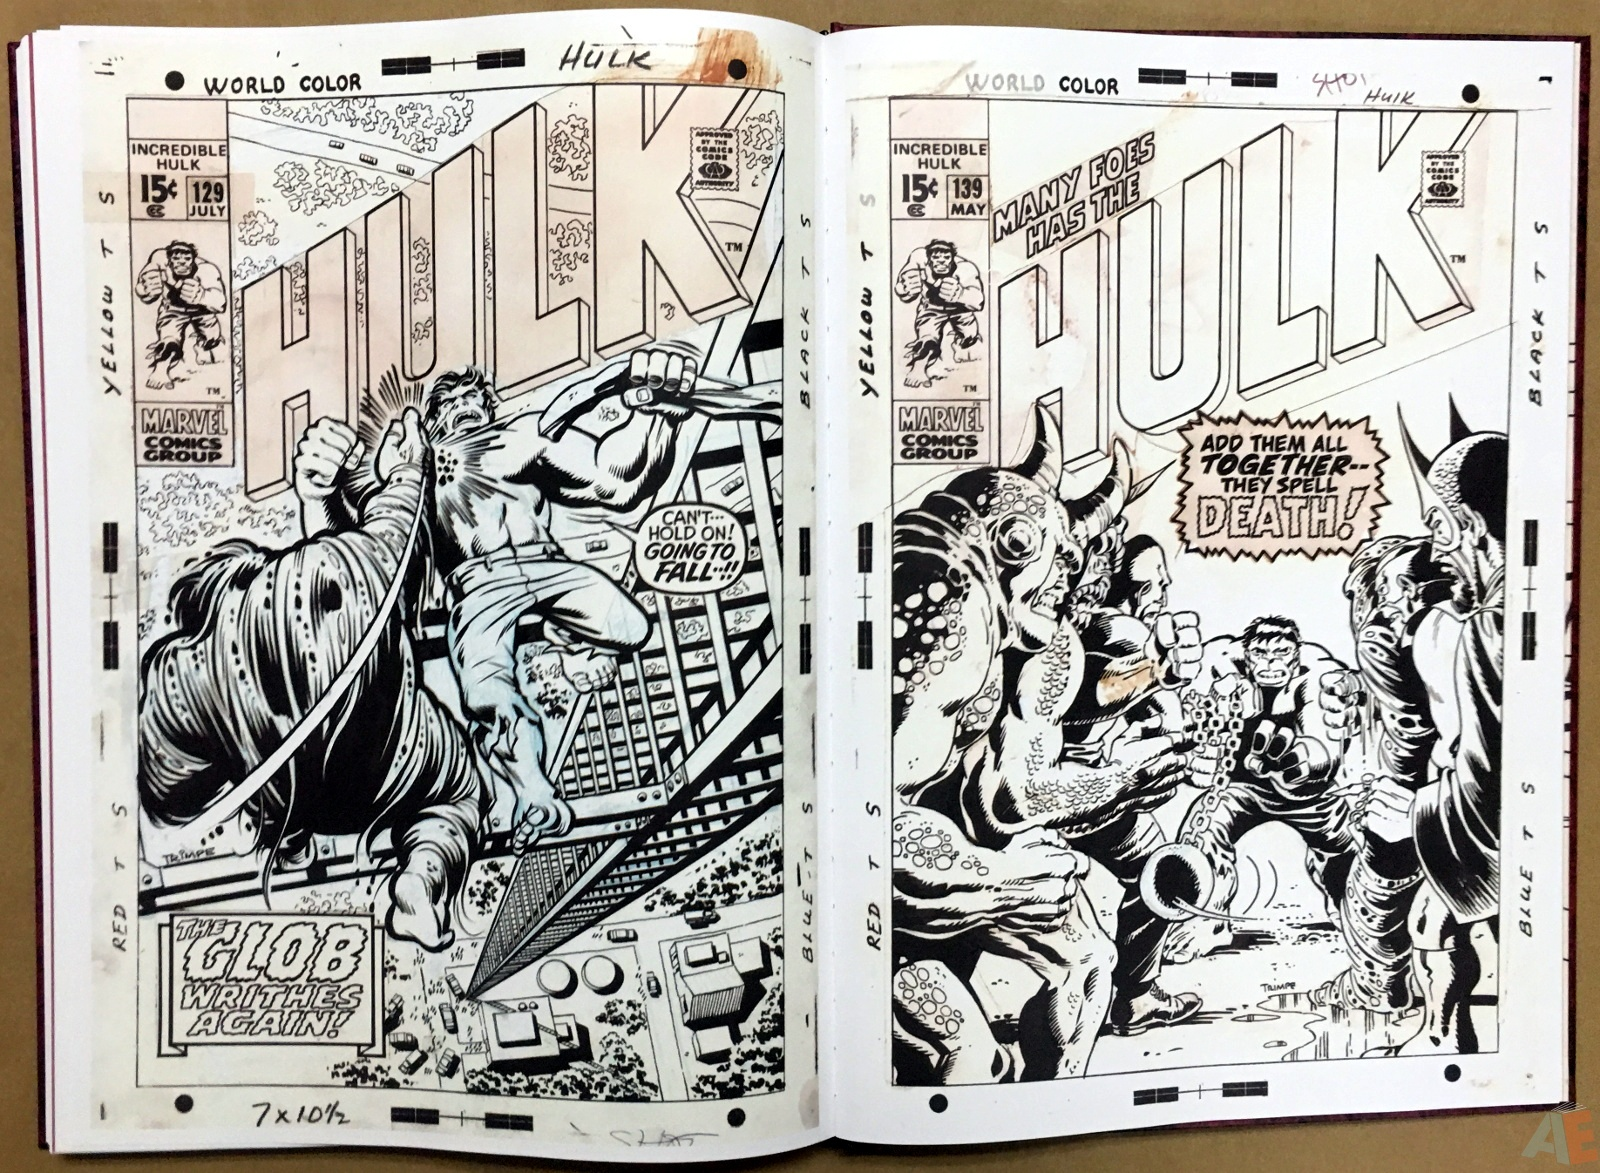 Herb Trimpe's The Incredible Hulk Artist's Edition